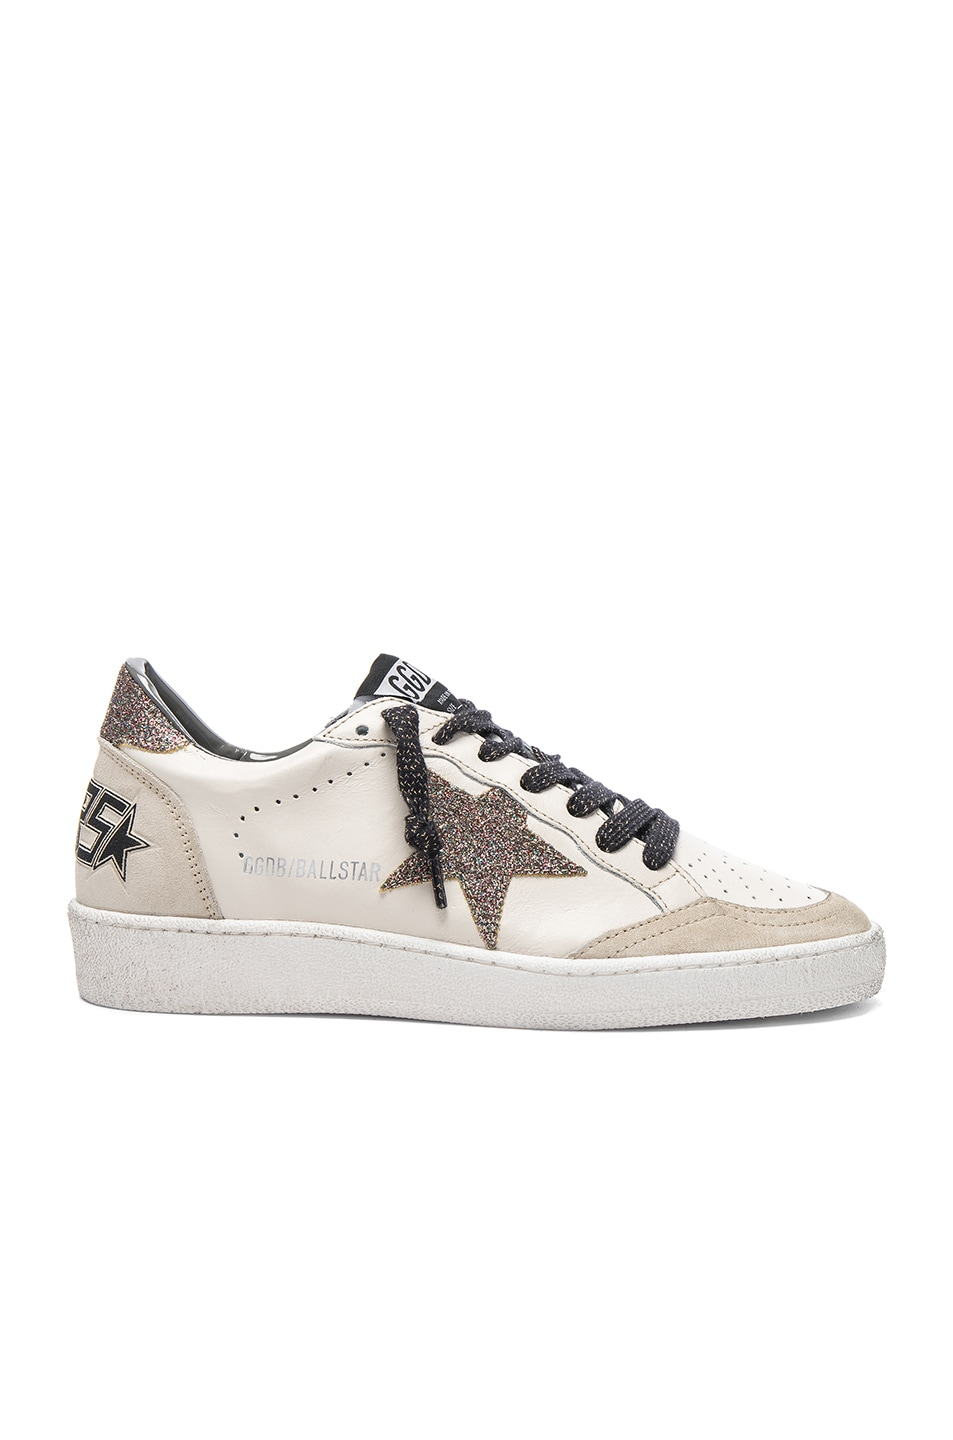 Image 1 of Golden Goose Leather Ball Star Sneakers in Cream & Multi Glitter Star